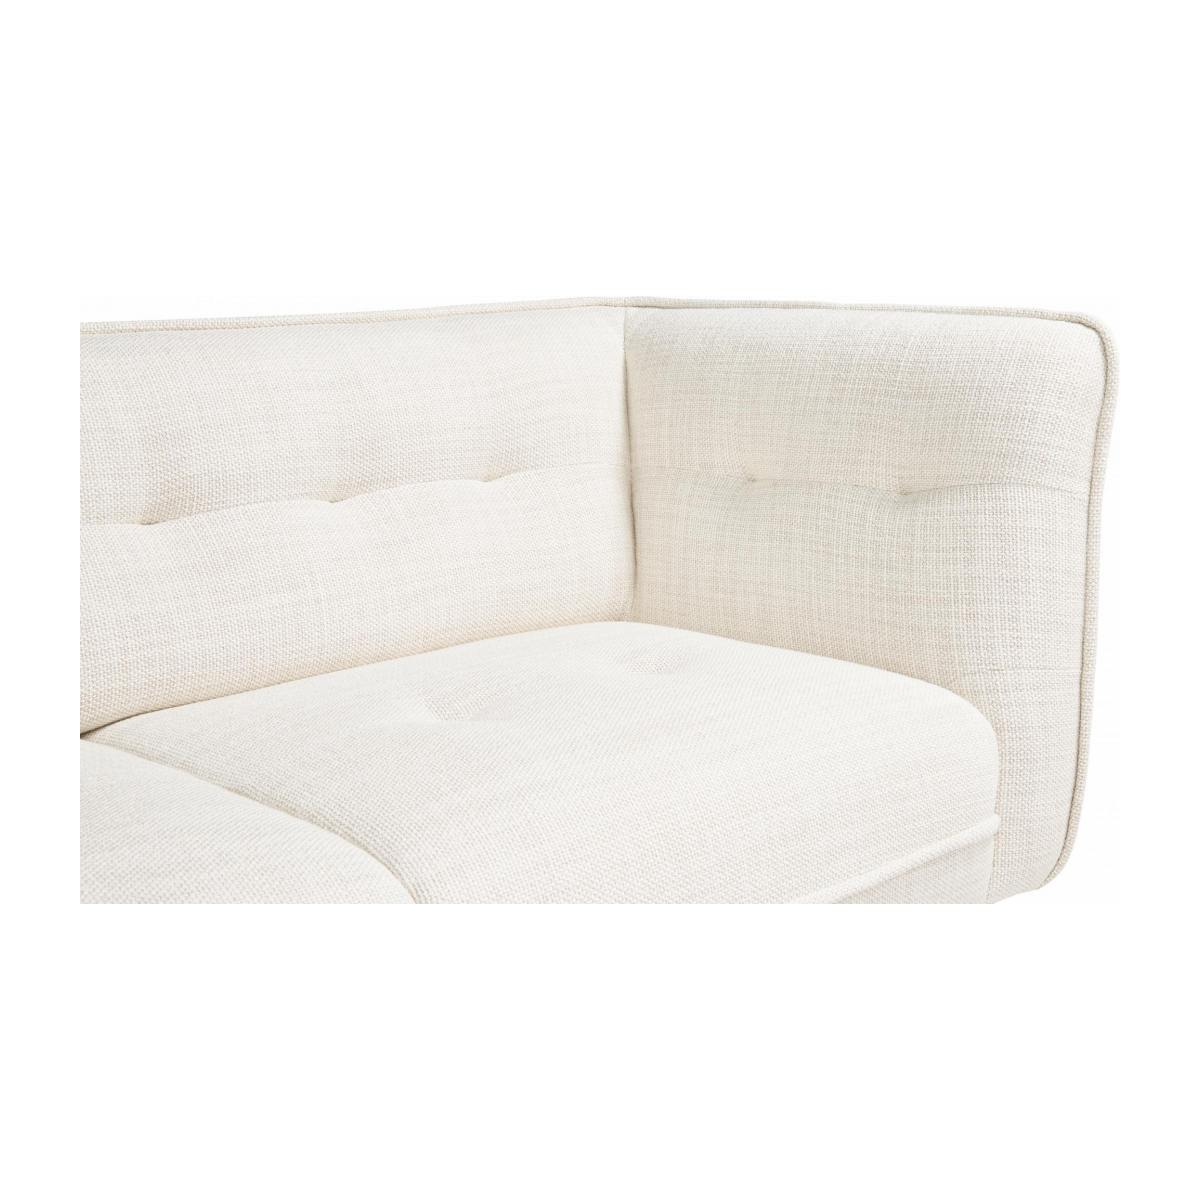 2 seater sofa in Fasoli fabric, snow white and oak legs n°6